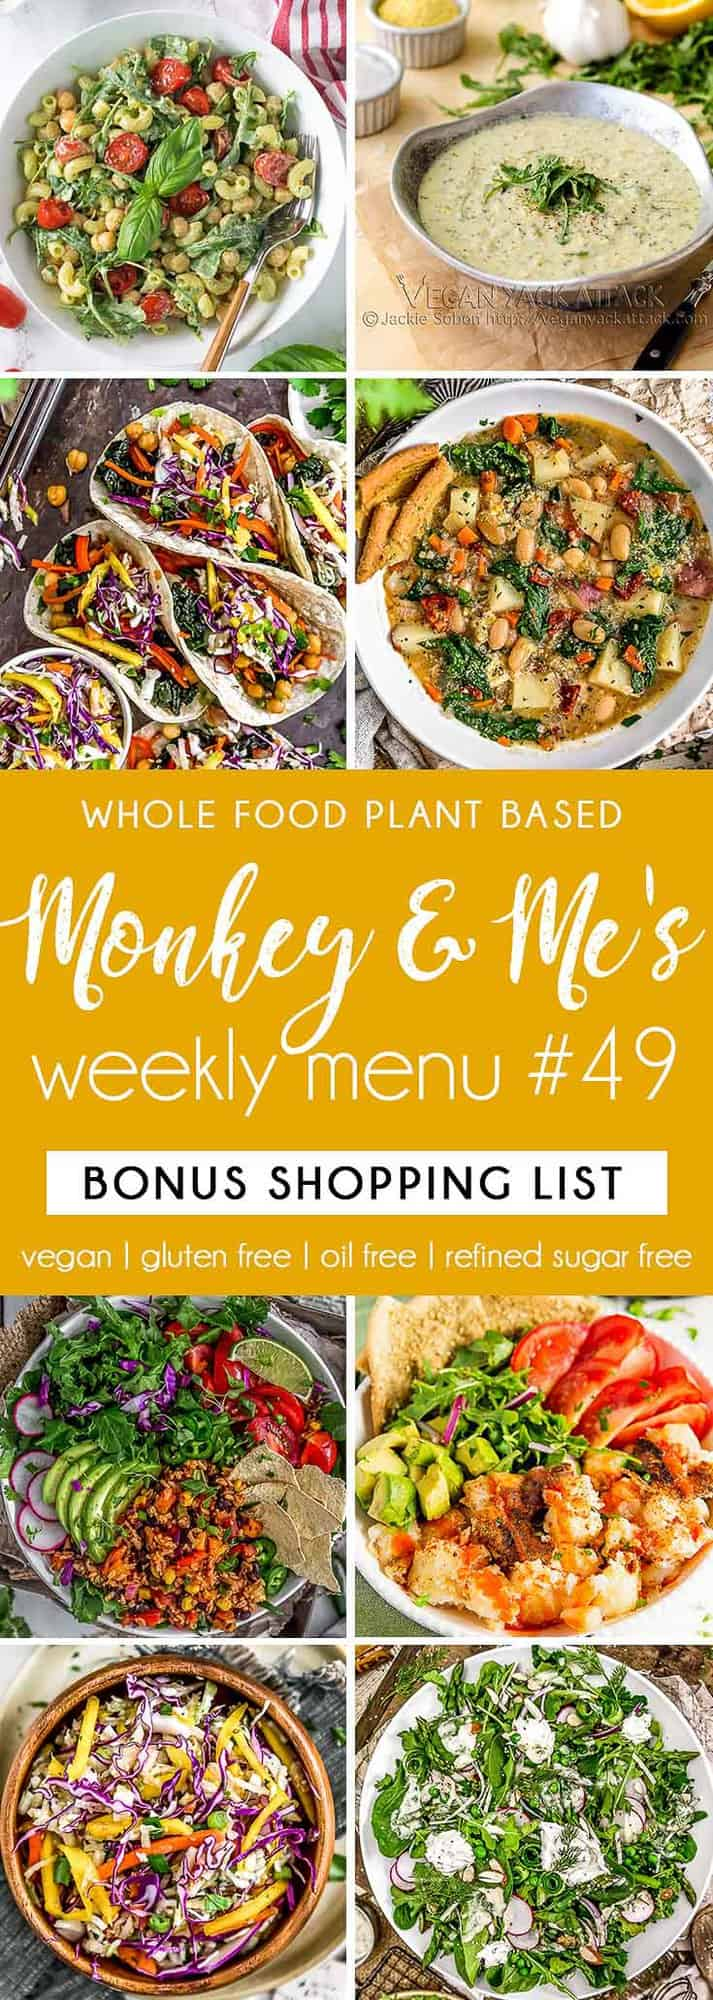 Monkey and Me's Menu 49 featuring 8 recipes